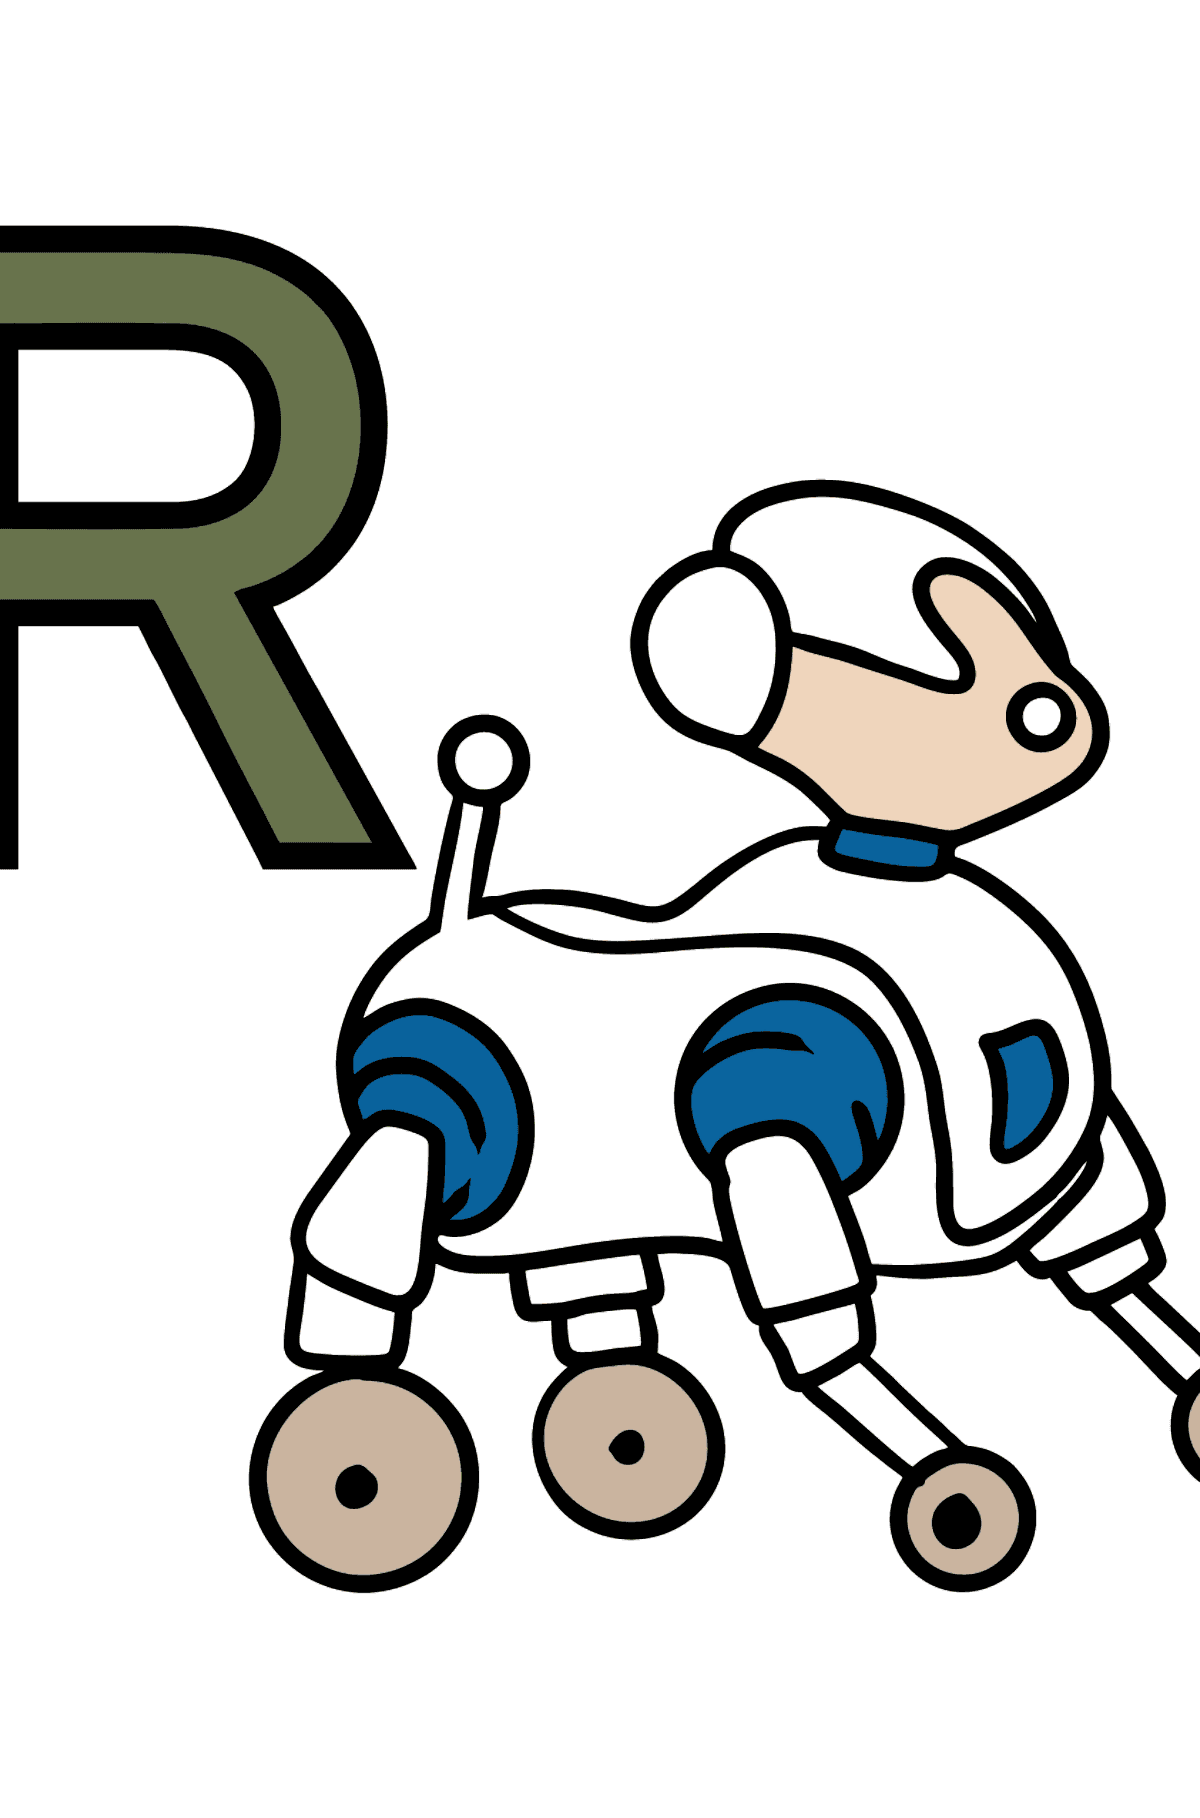 Portuguese Letter R coloring pages - ROBÔ - Coloring Pages for Kids